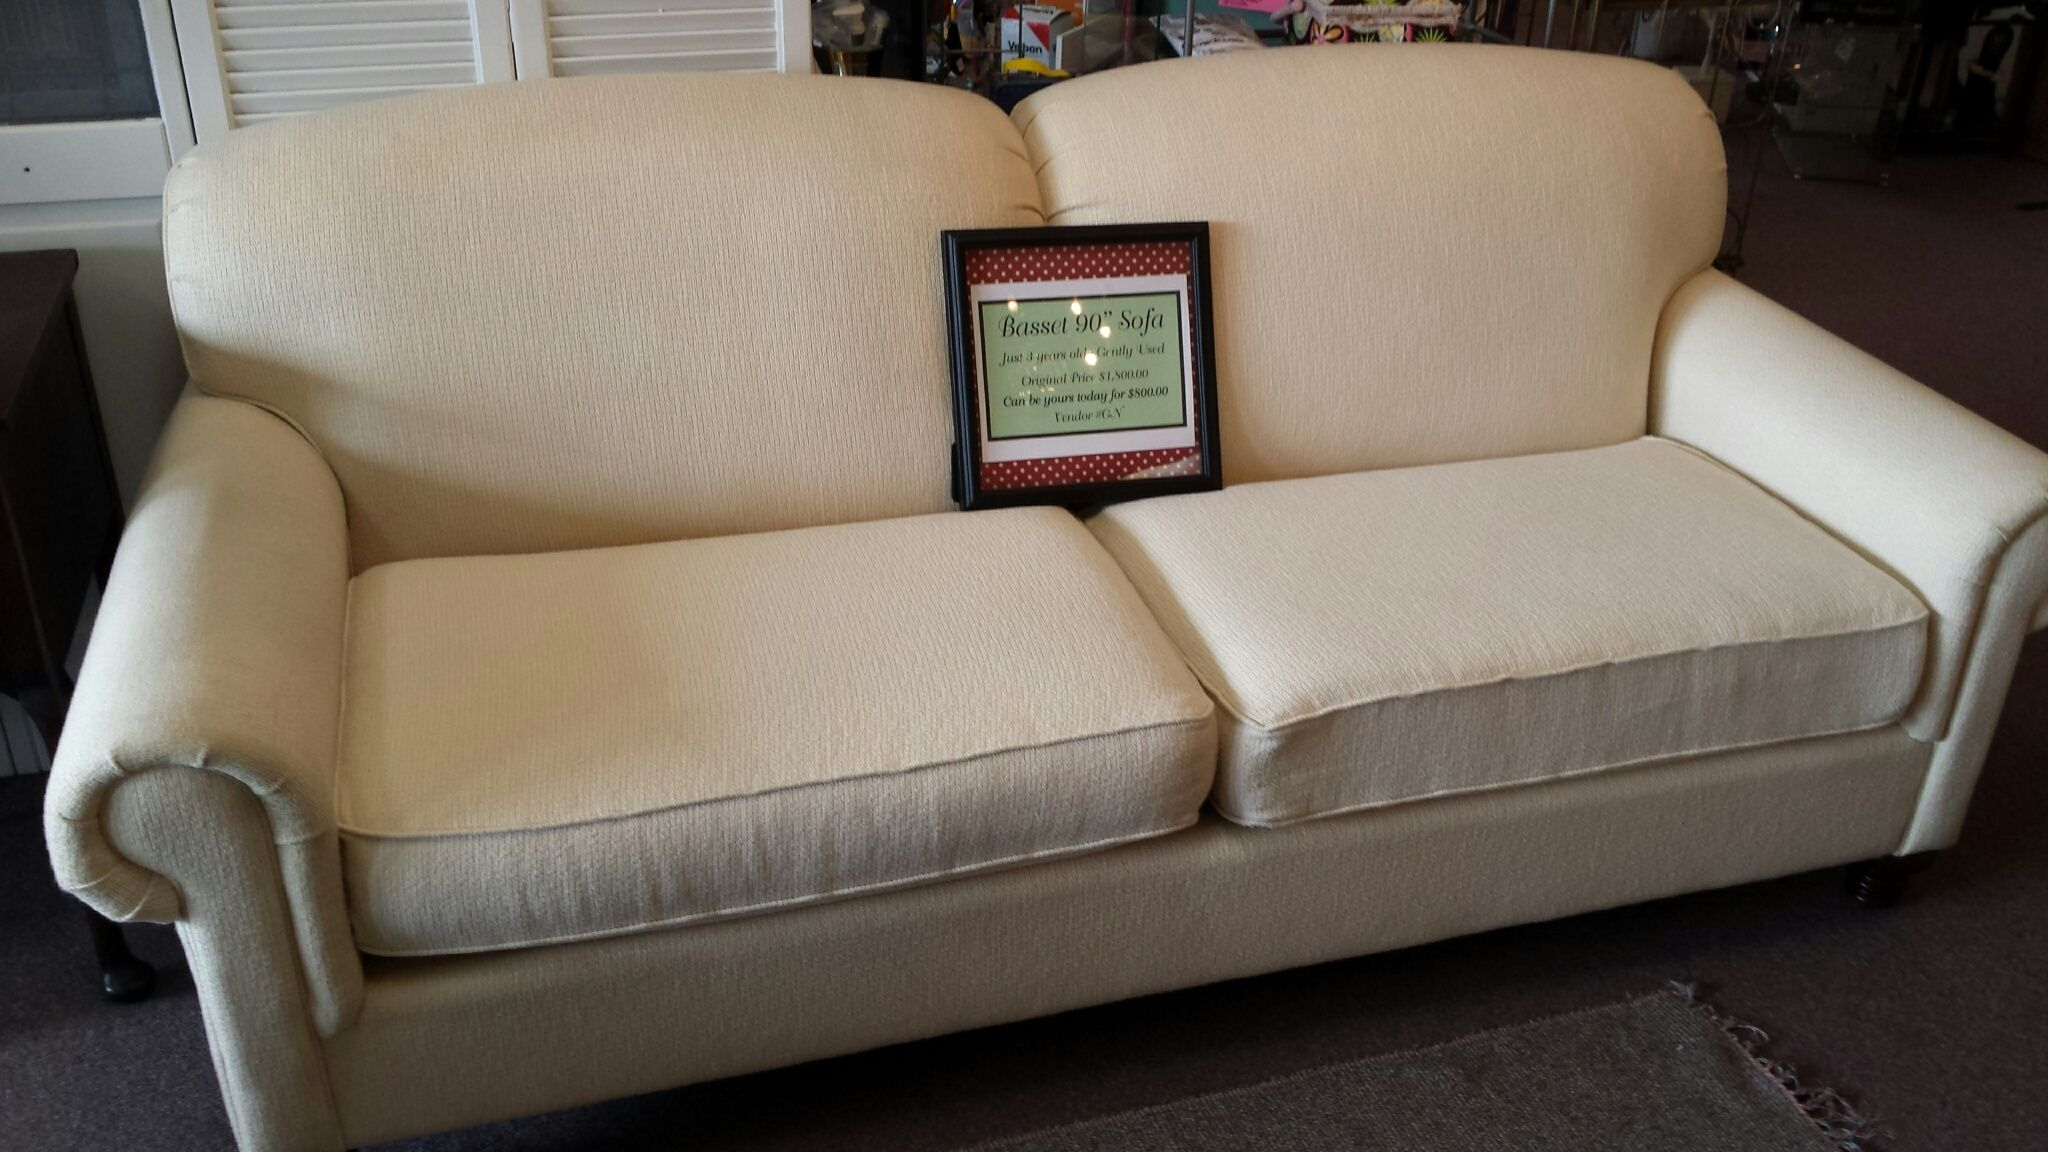 Surprising Basset Couch Originally 1 800 Now Only 800 Excellent Onthecornerstone Fun Painted Chair Ideas Images Onthecornerstoneorg